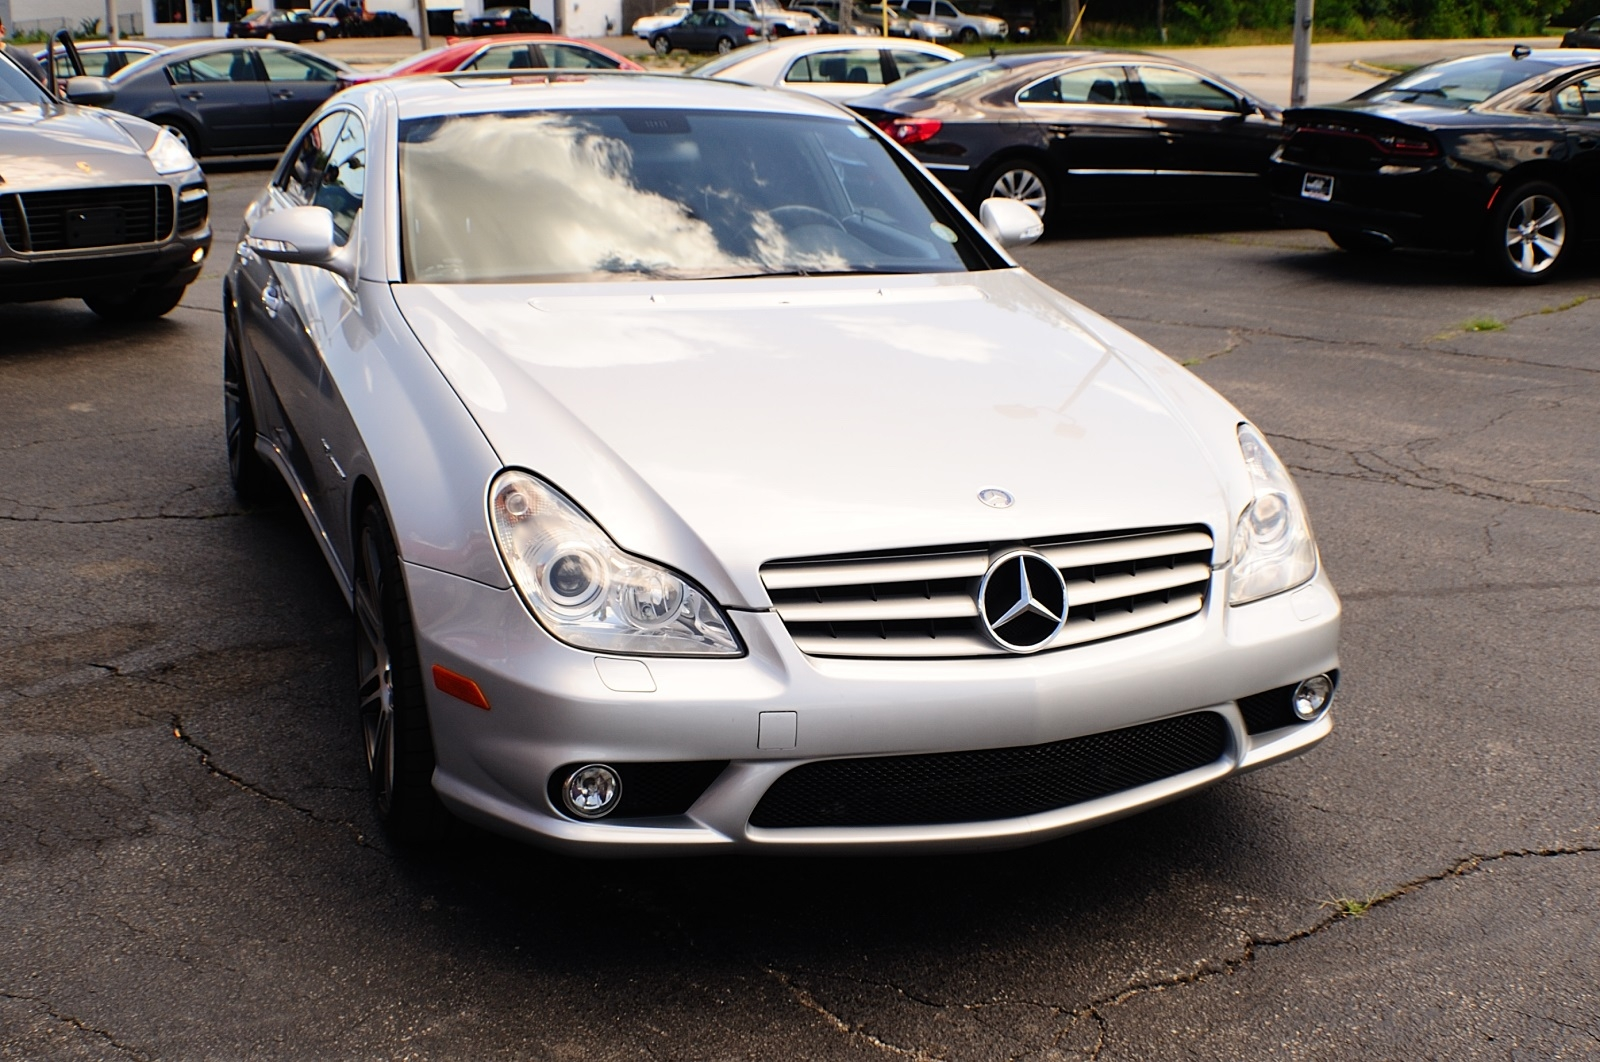 2006 Mercedes Benz CLS 55 AMG Silver Sedan Car Sale Gurnee Kenosha Mchenry Chicago Illinois